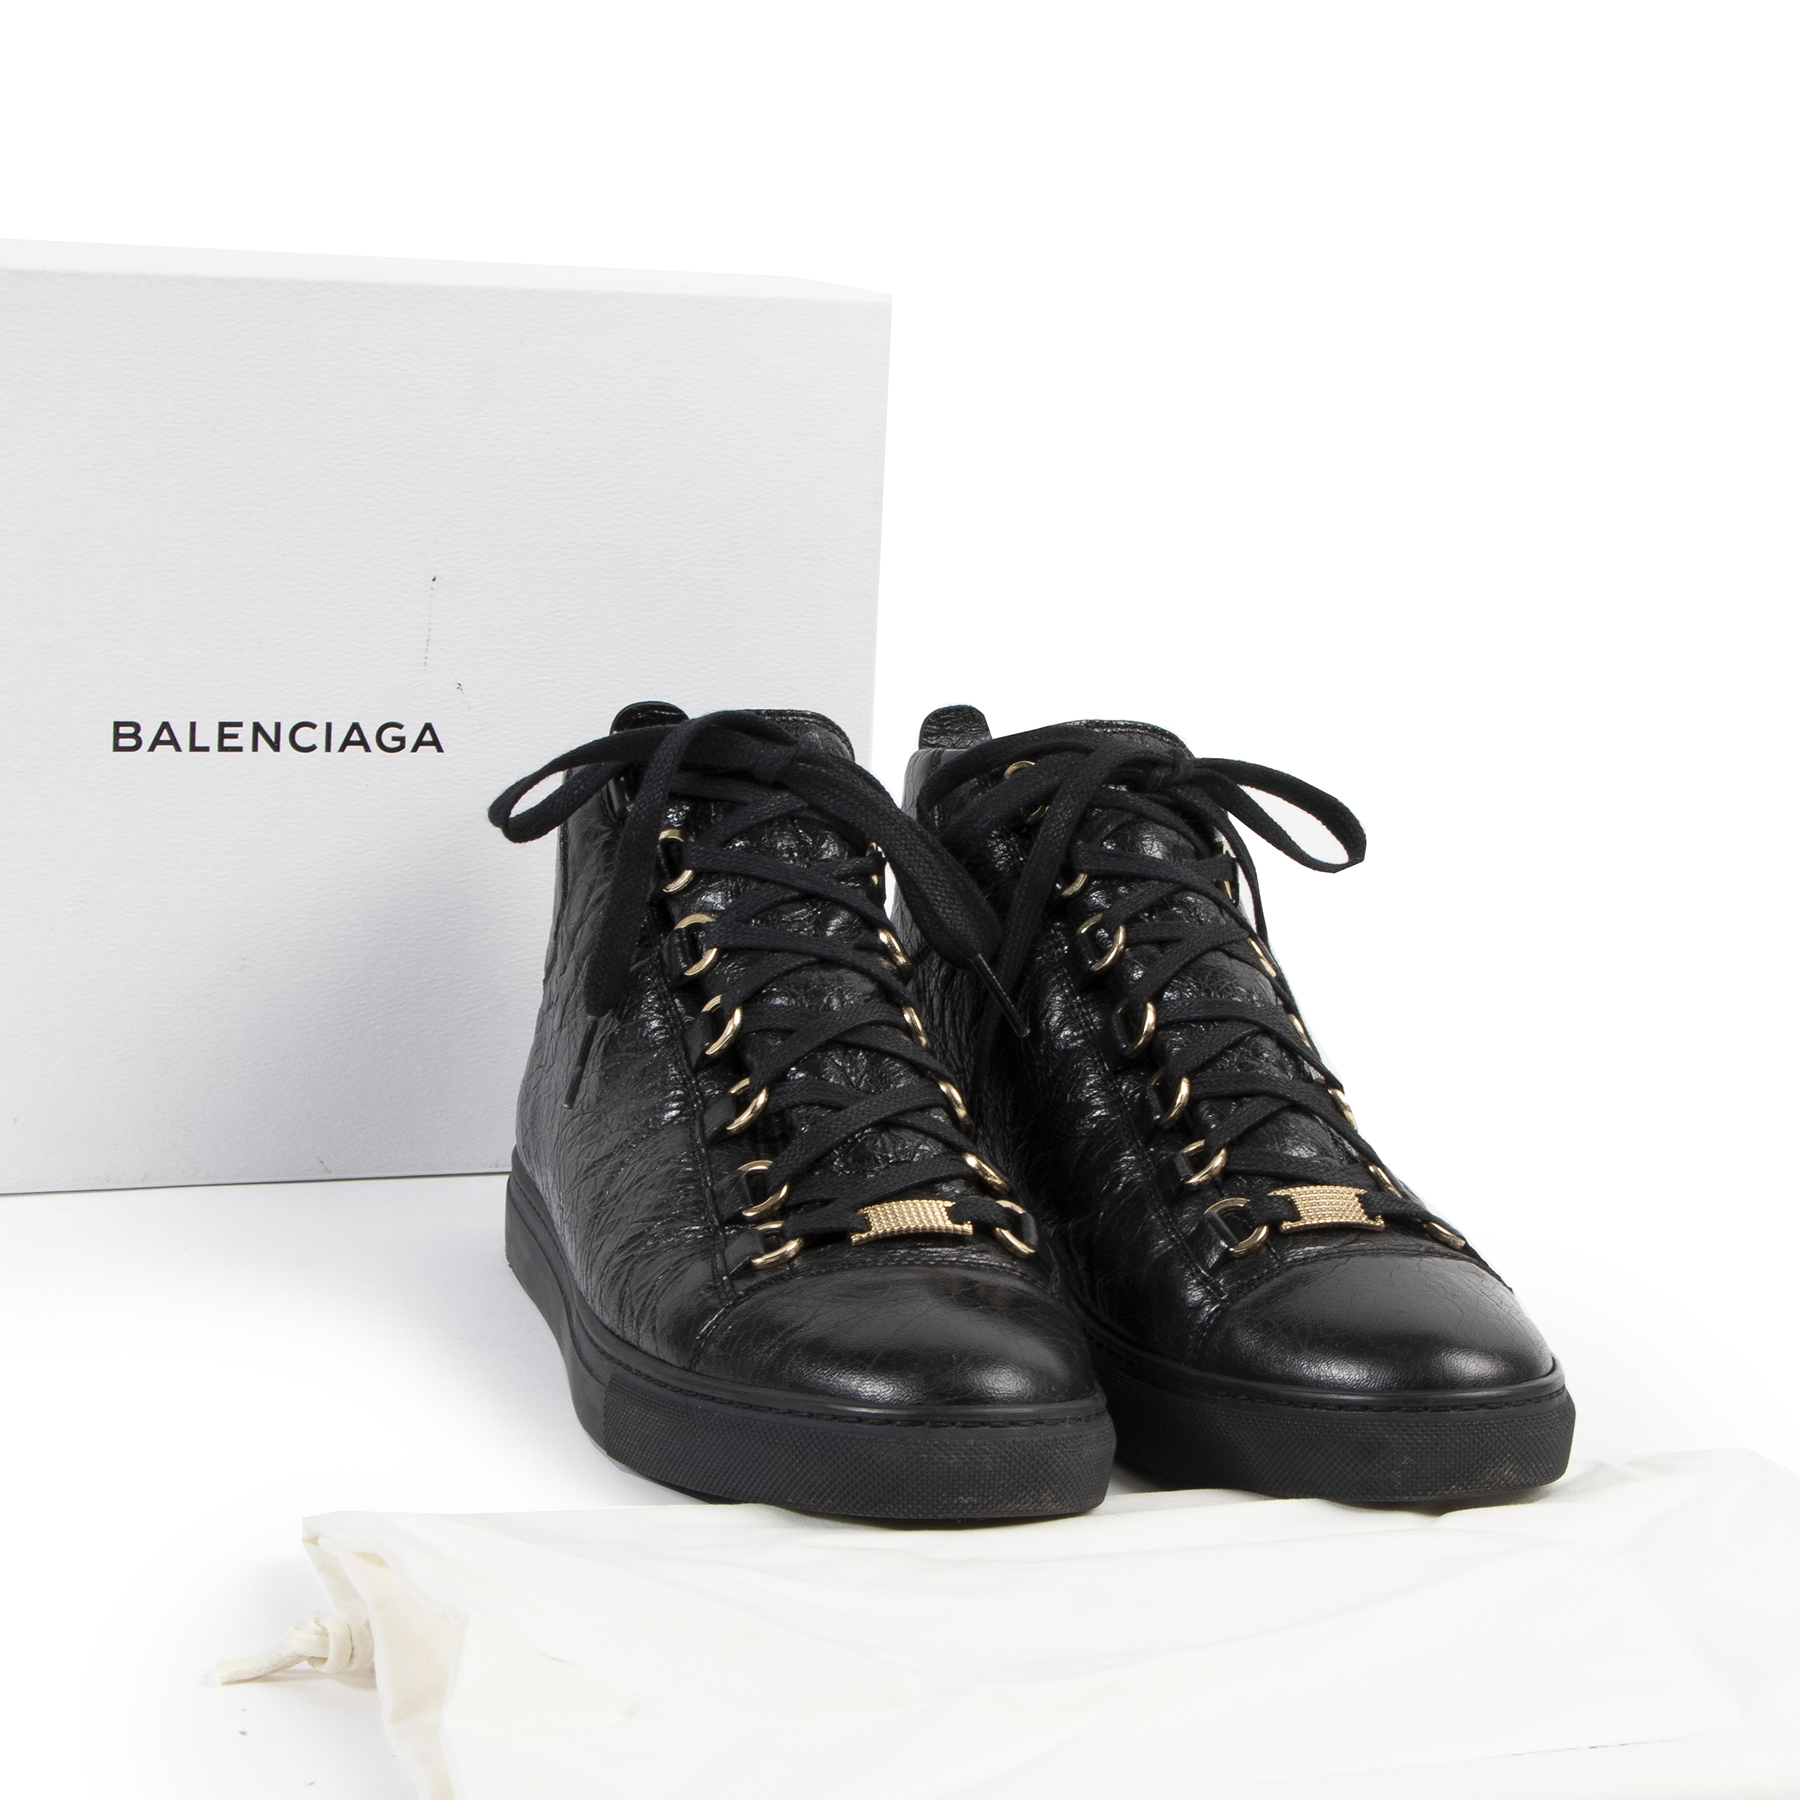 Authentic secondhand Balenciaga Black Arena High Shiny Leather Sneakers - Size 40  designer sneakers fashion luxury vintage webshop safe secure online shopping